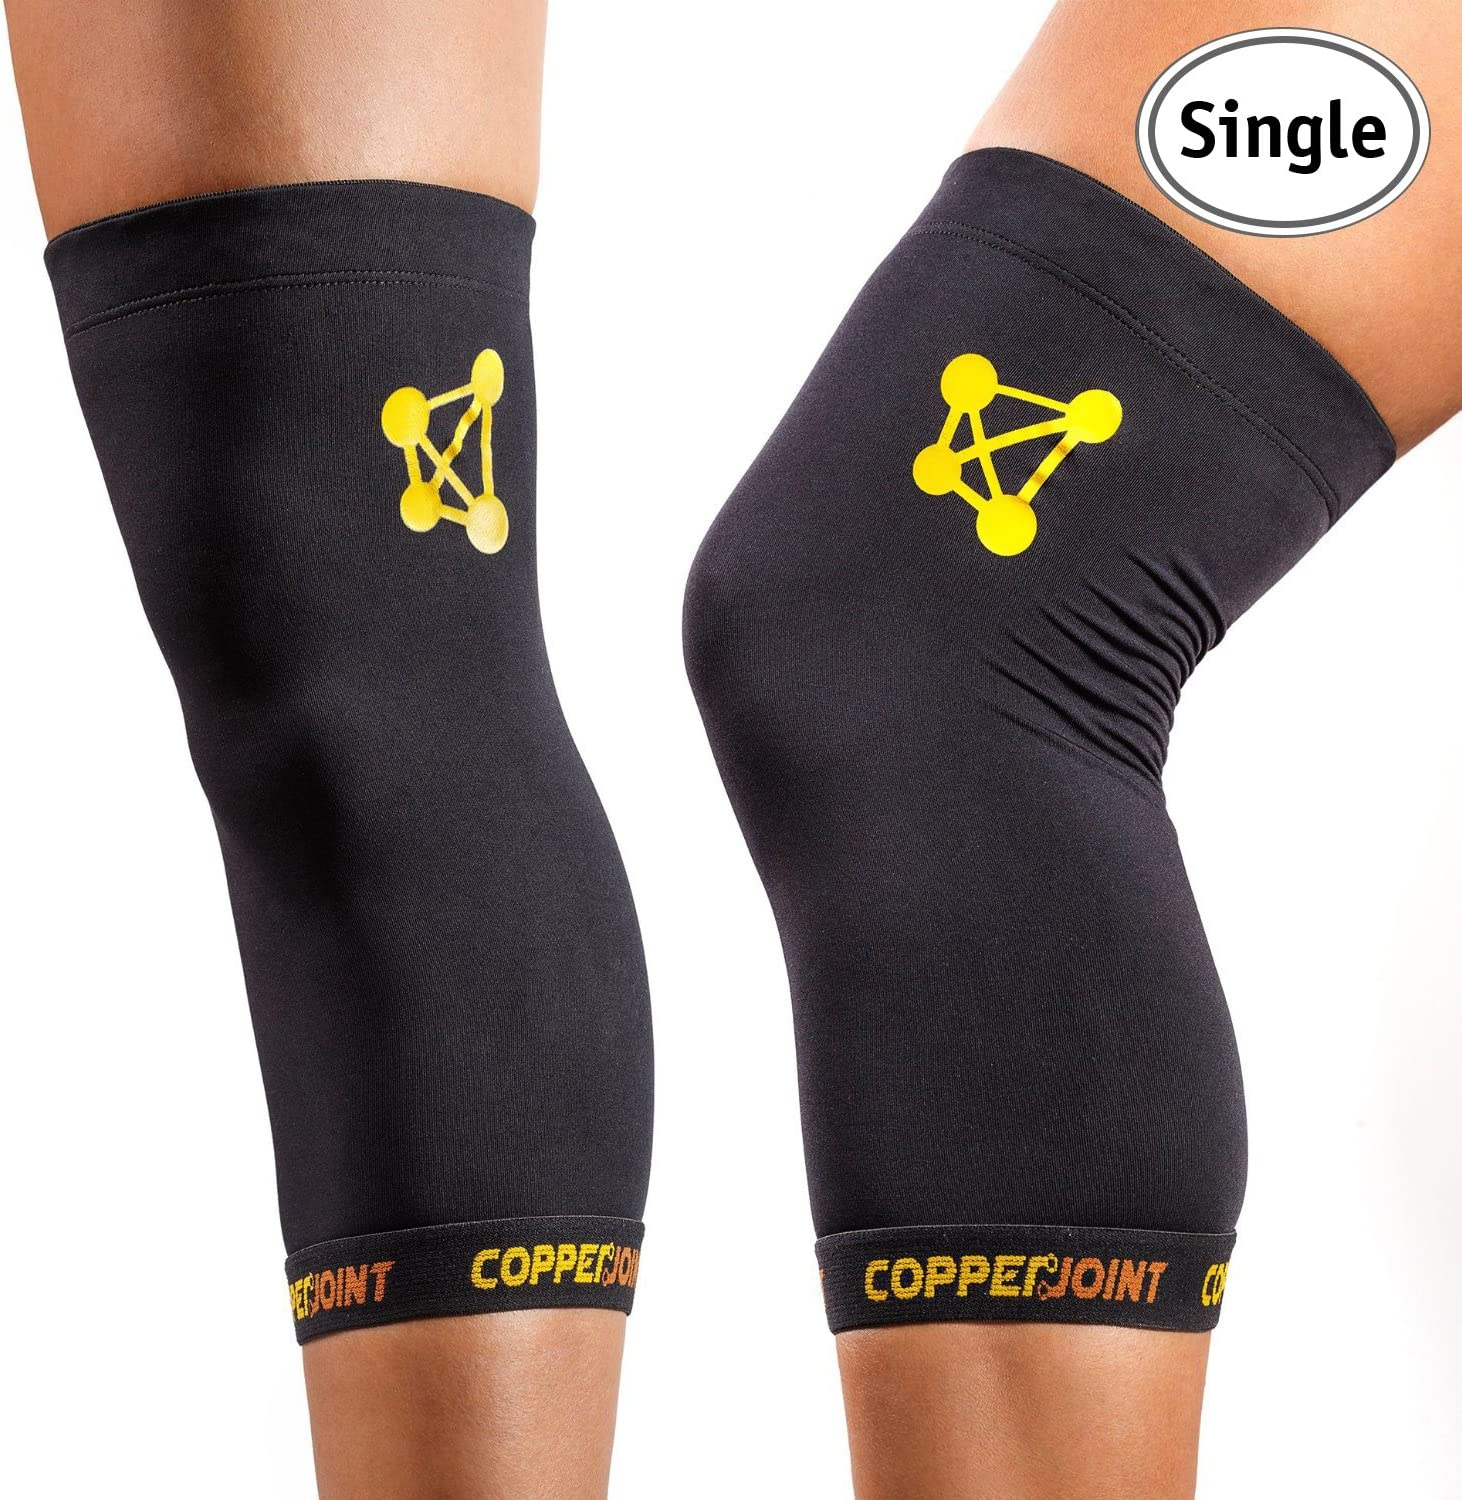 CopperJoint Compression Knee Sleeve